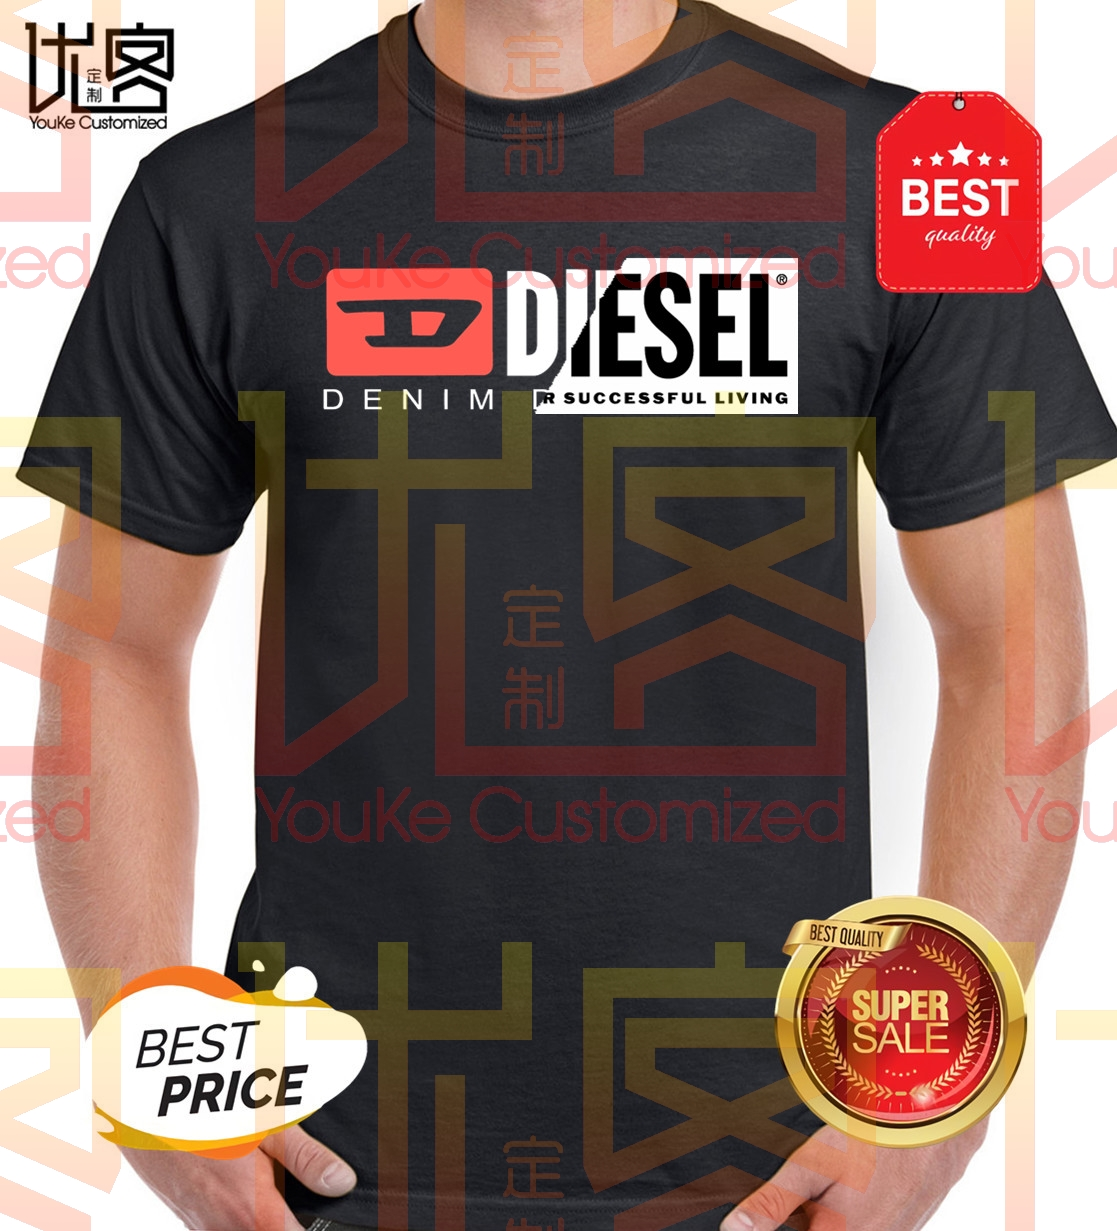 Diesel For Successful Living Shirt Men's Women's Summer 100% Cotton Team Tees Male Newest Top Popular Normal Tee Shirts